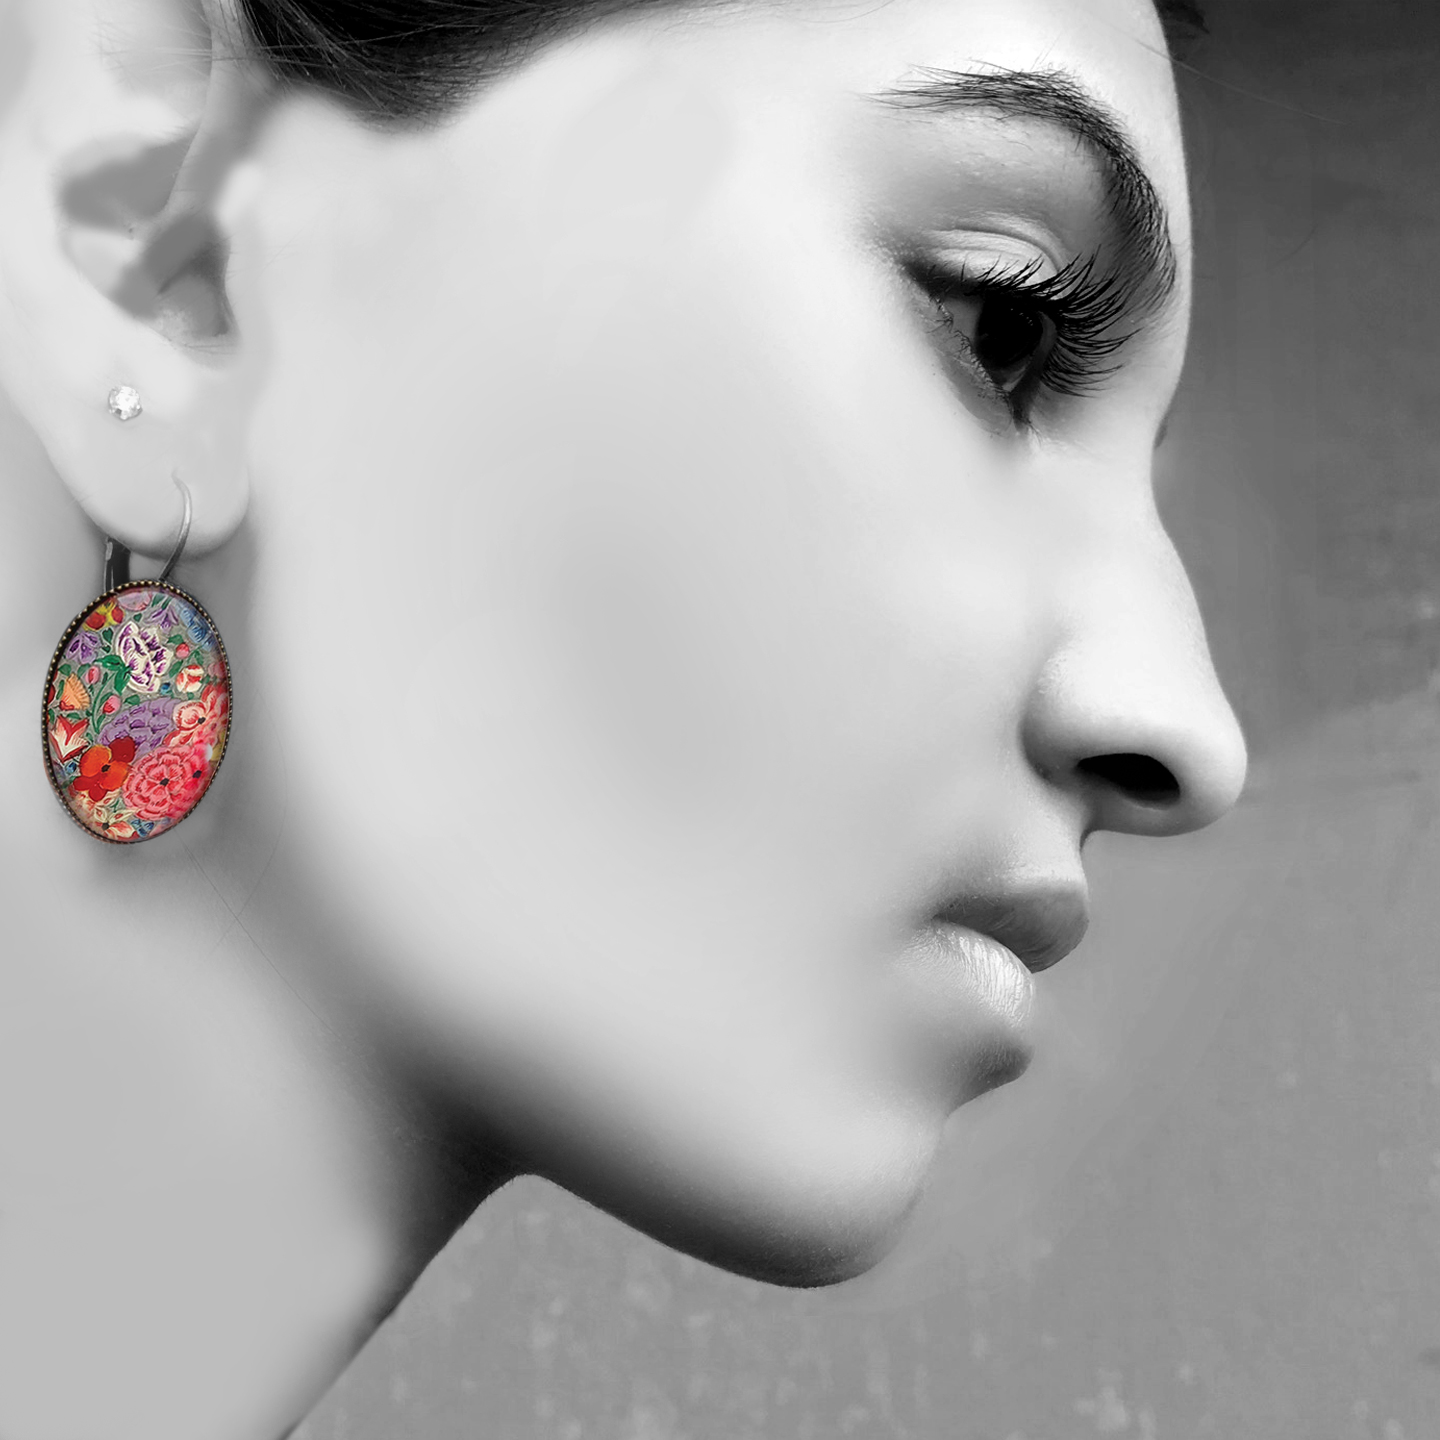 Oval Lever back earrings - Naqashi, Kashmir - Gul Hazara